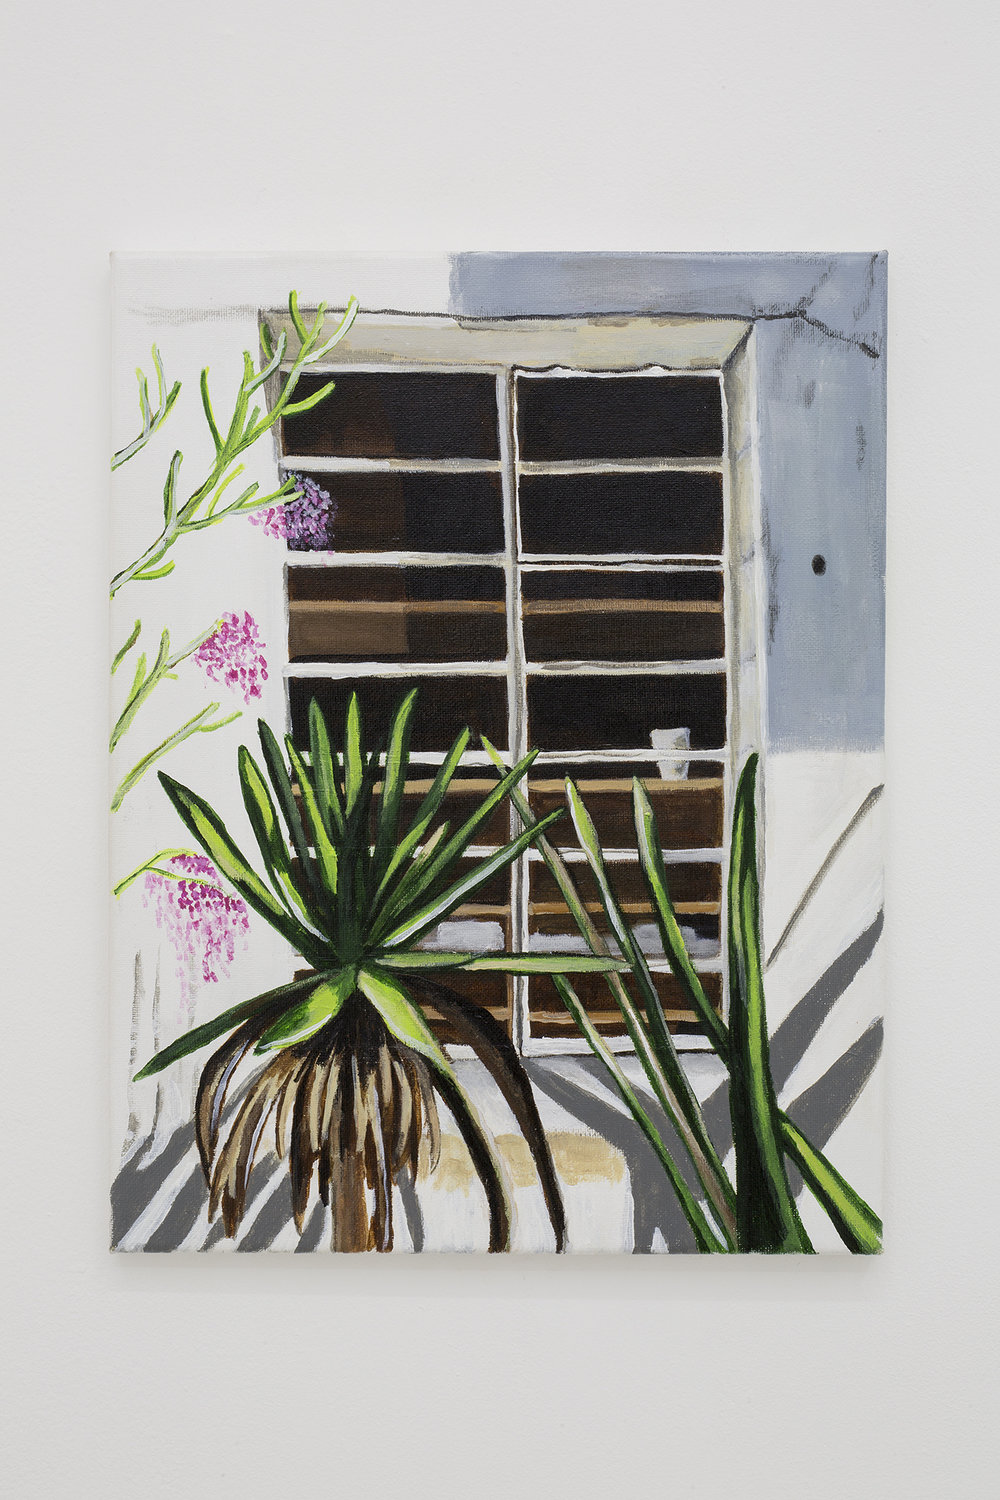 Shana Sharp, La Ventana, 2018. Acrylic on canvas.  11 x 14 inch (27.94 x 35.56 cm)